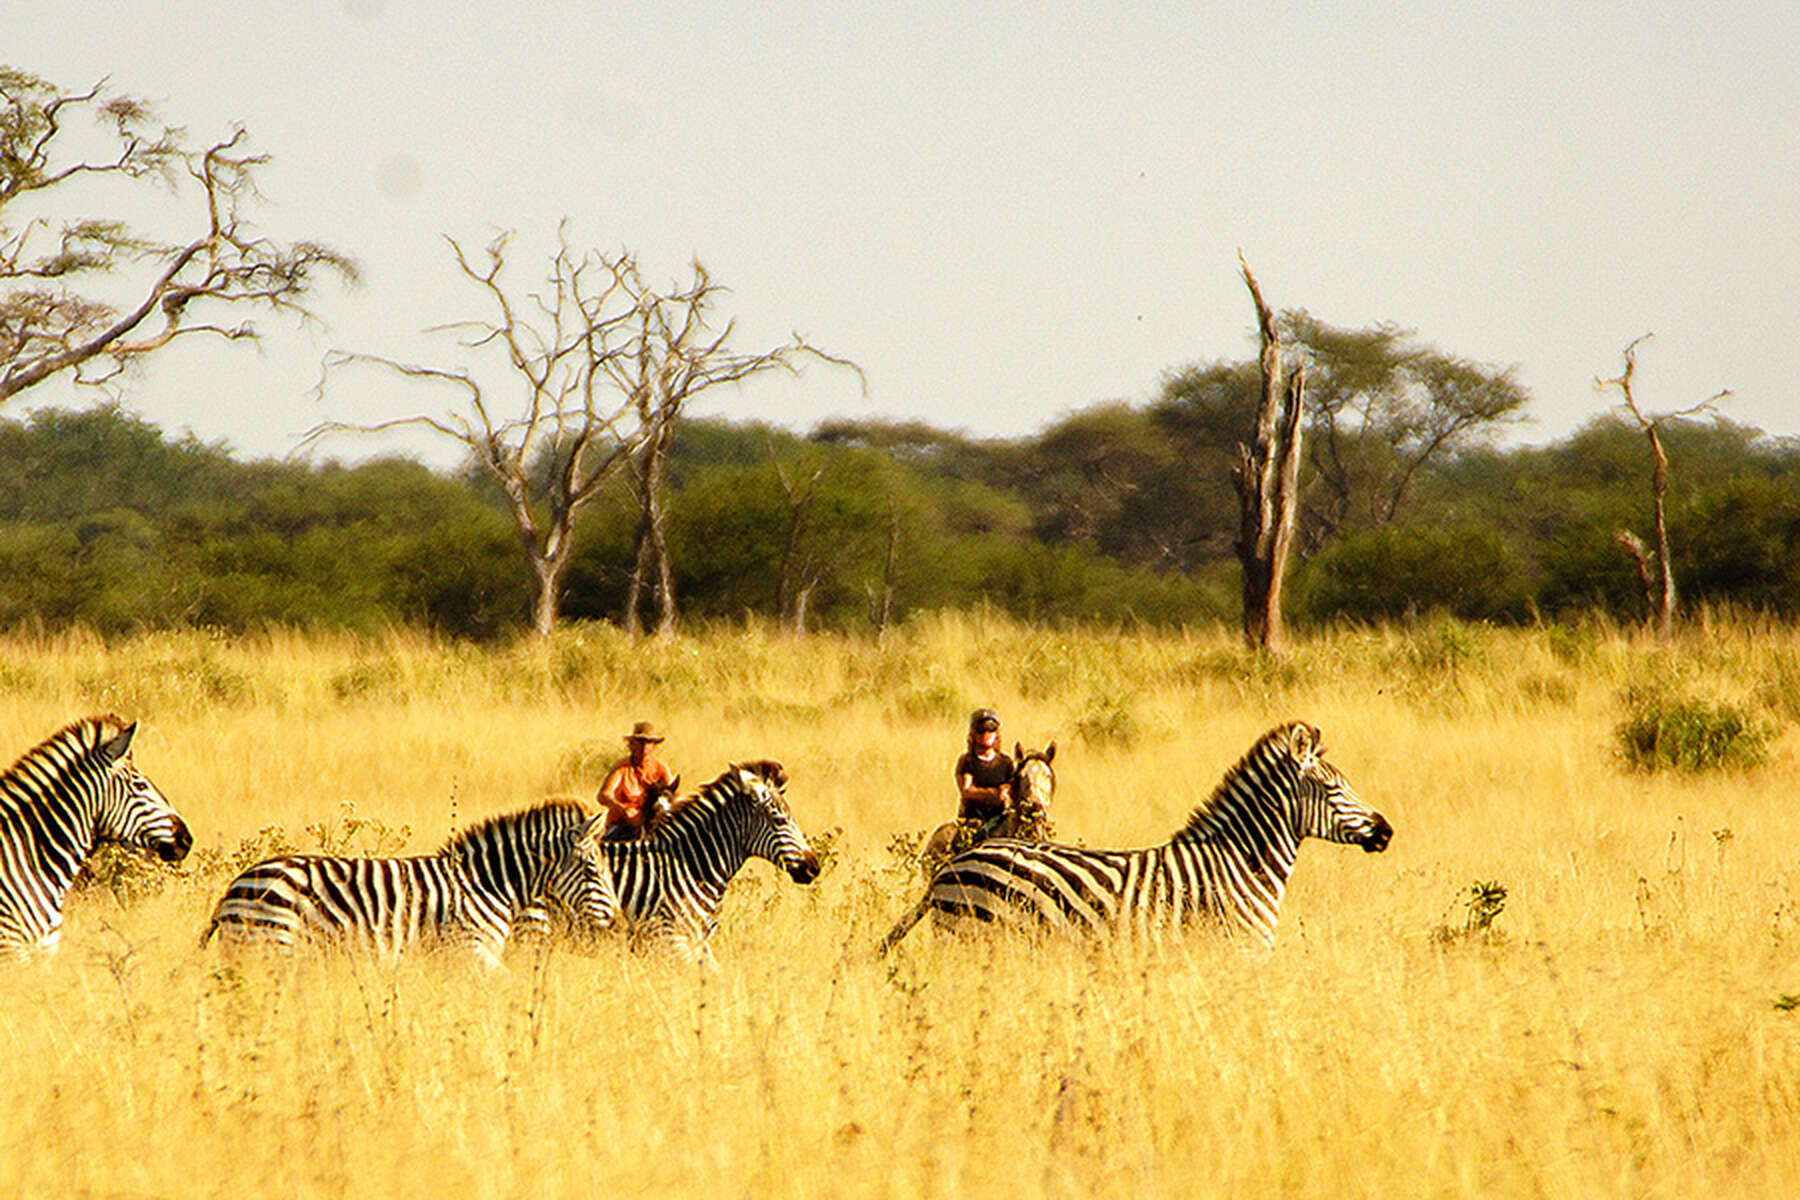 Zebras and horseback riders on a riding safari